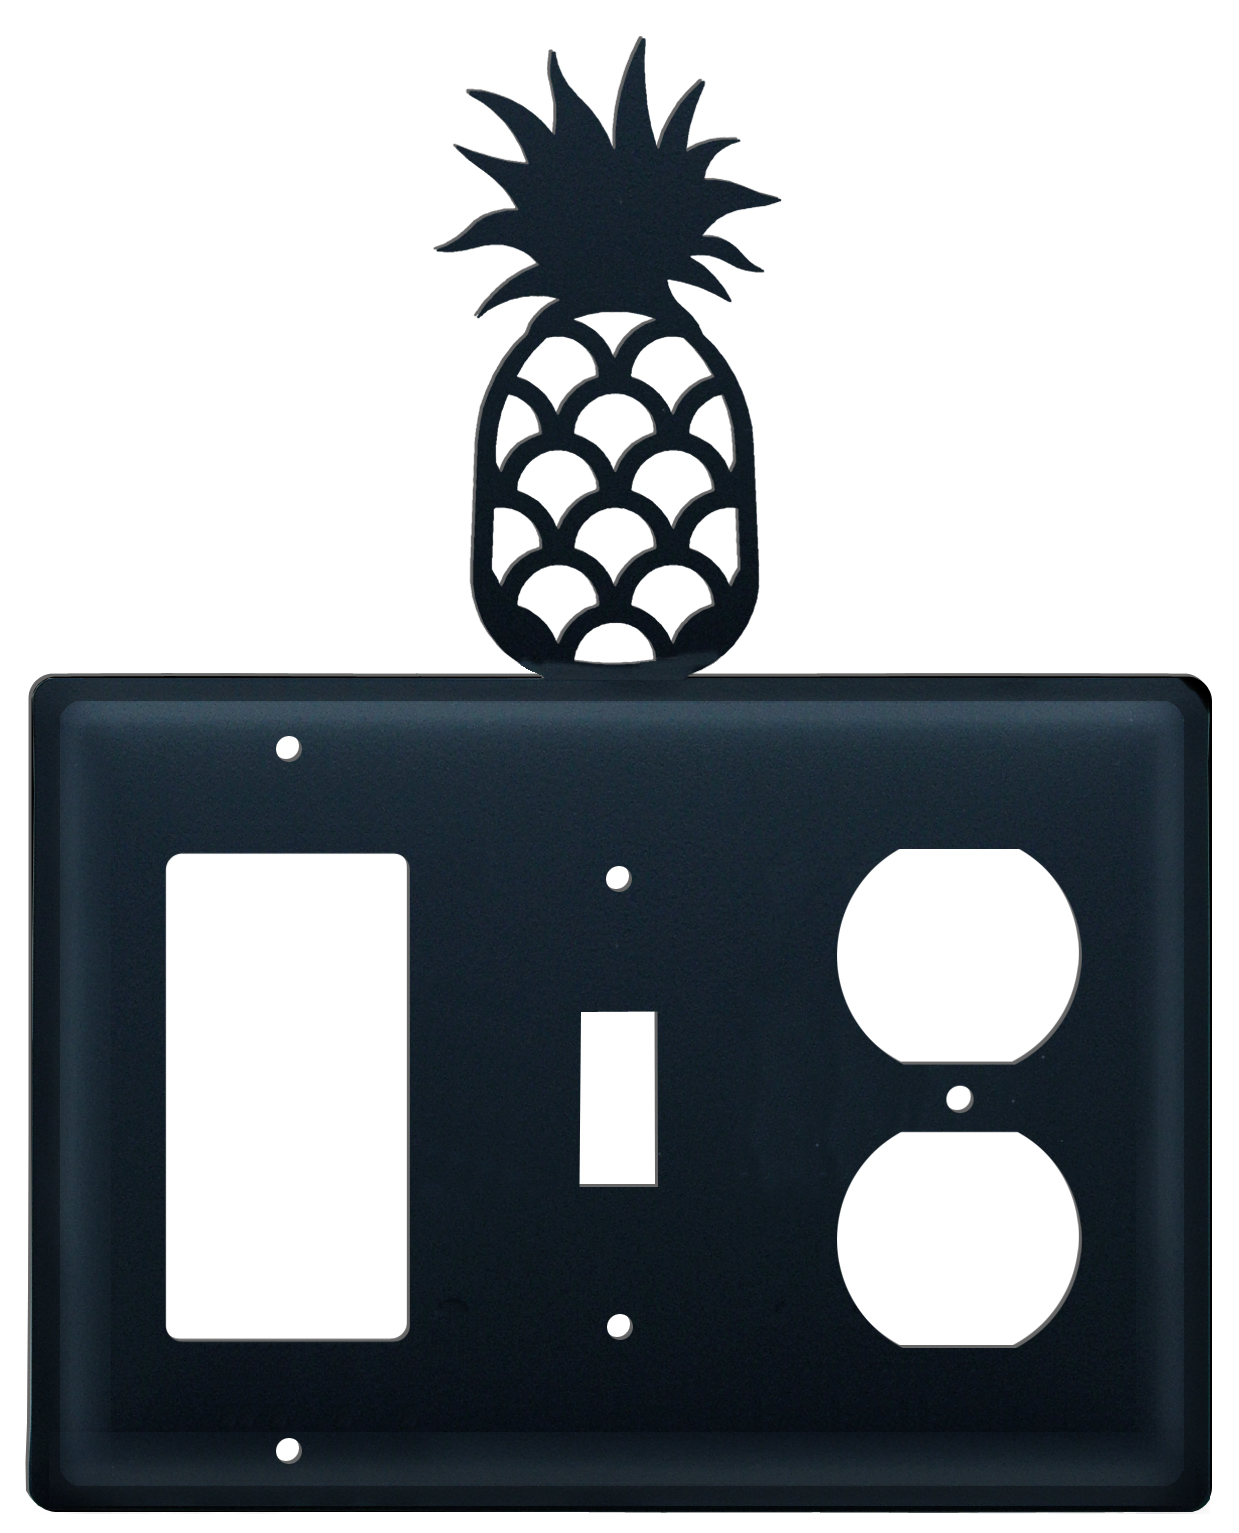 Pineapple - Single GFI, Switch and Outlet Cover